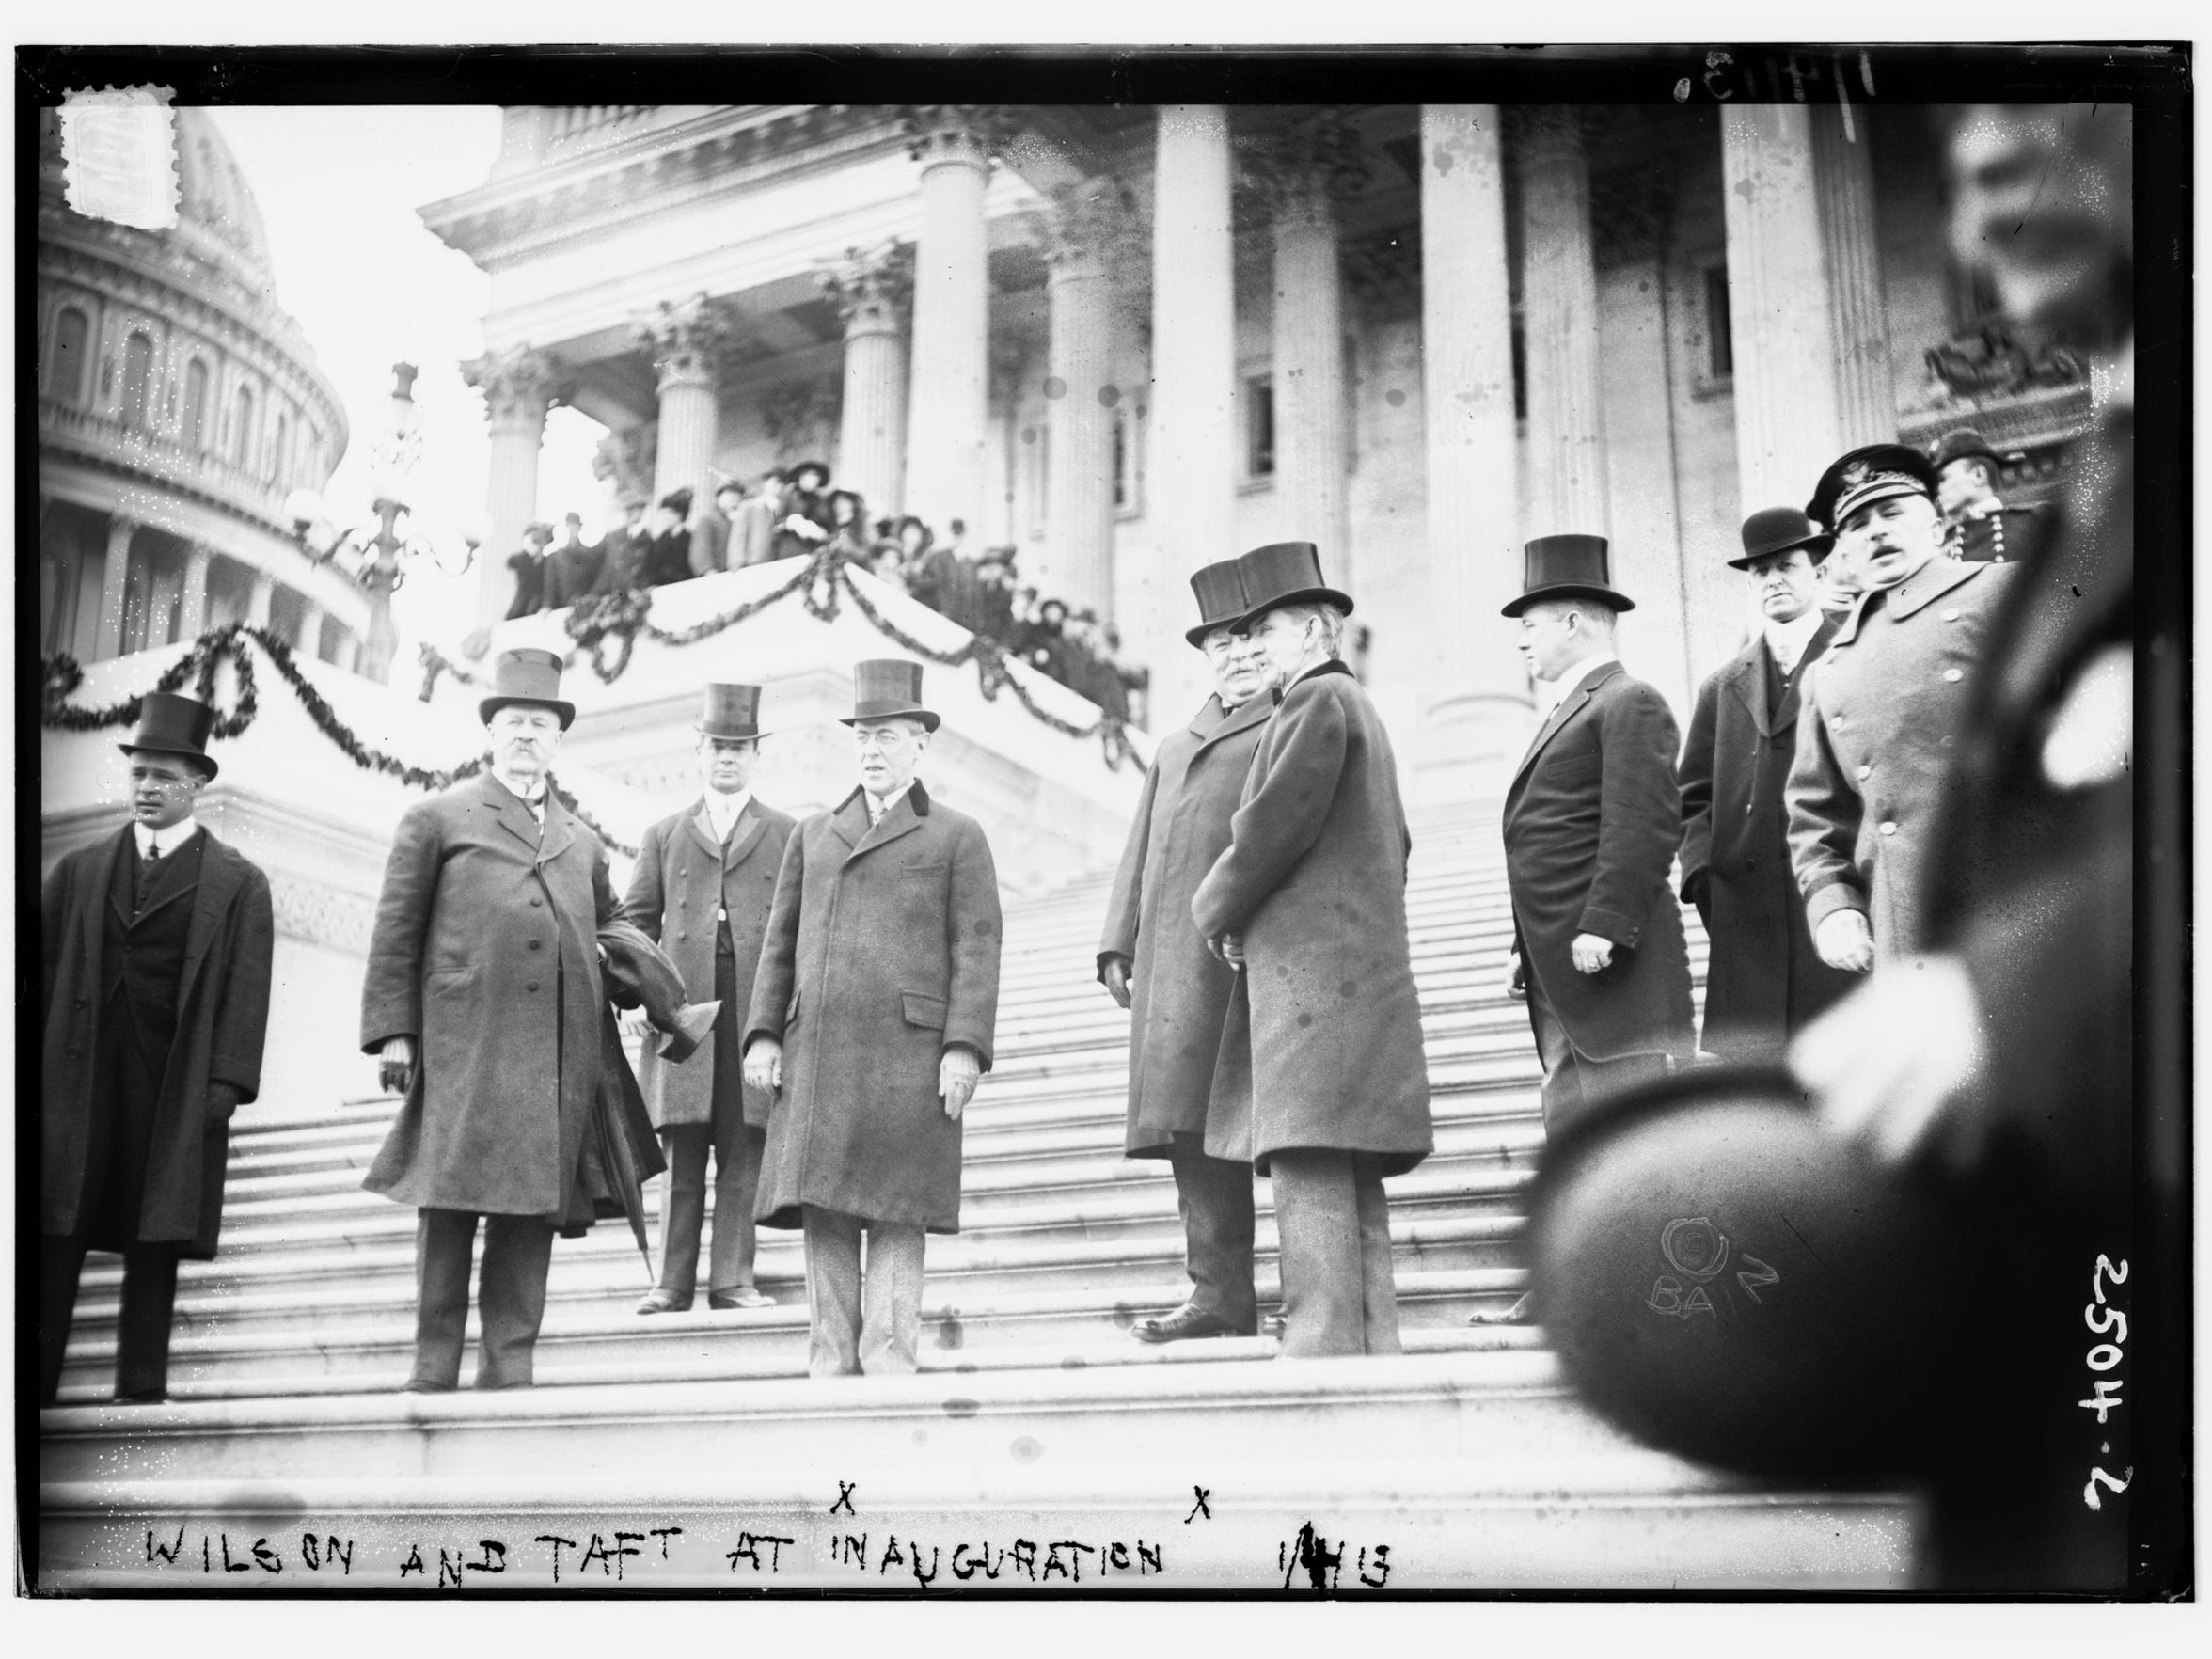 Photo shows incoming president Woodrow Wilson (center) and outgoing president William Howard Taft on the steps of the United States Capitol in Washington, D.C., at Wilson's inauguration.